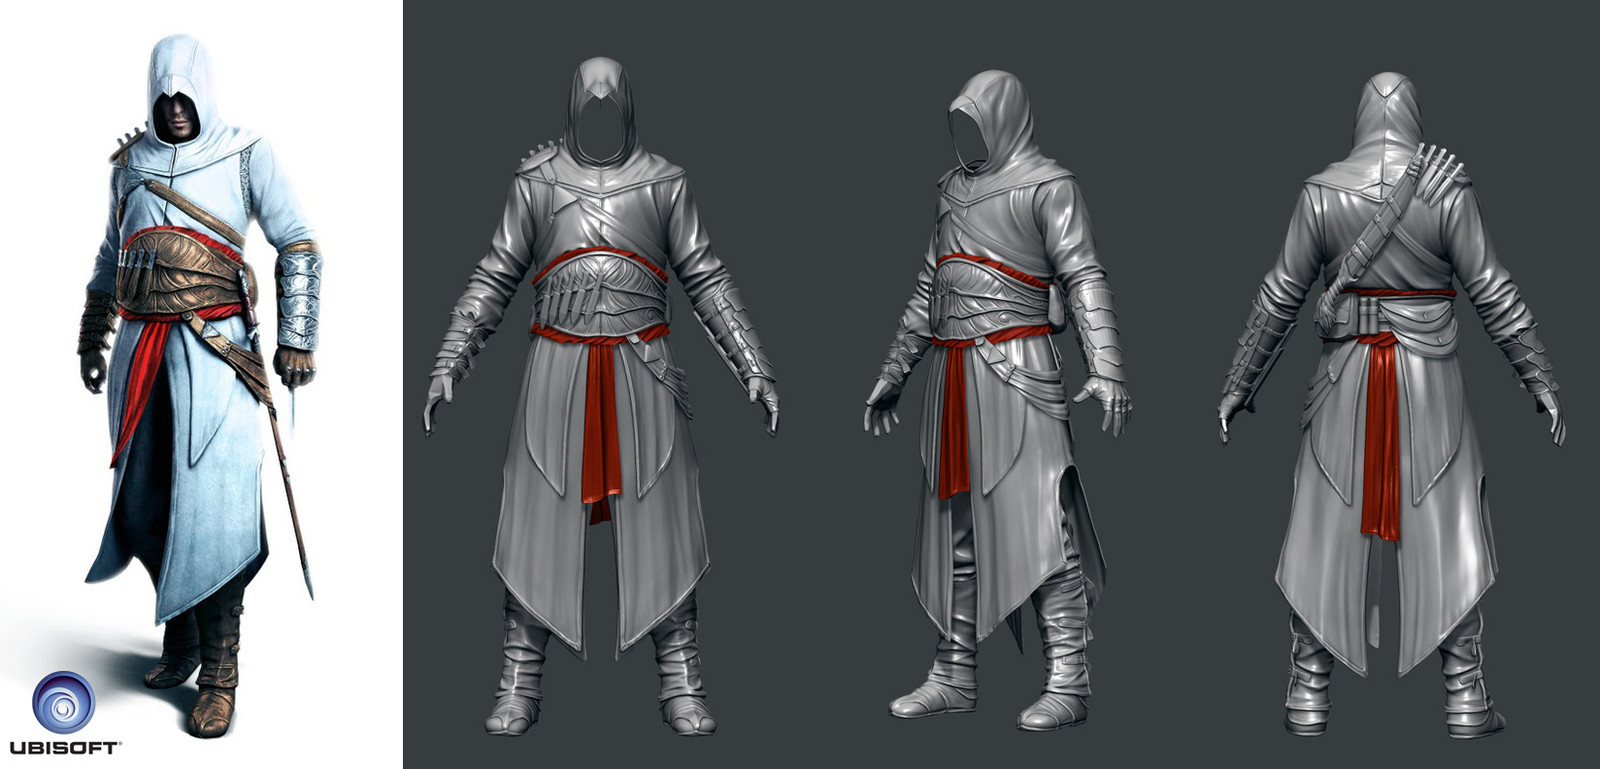 Altair - I modeled the ingame character from Assassin's Creed Revelations